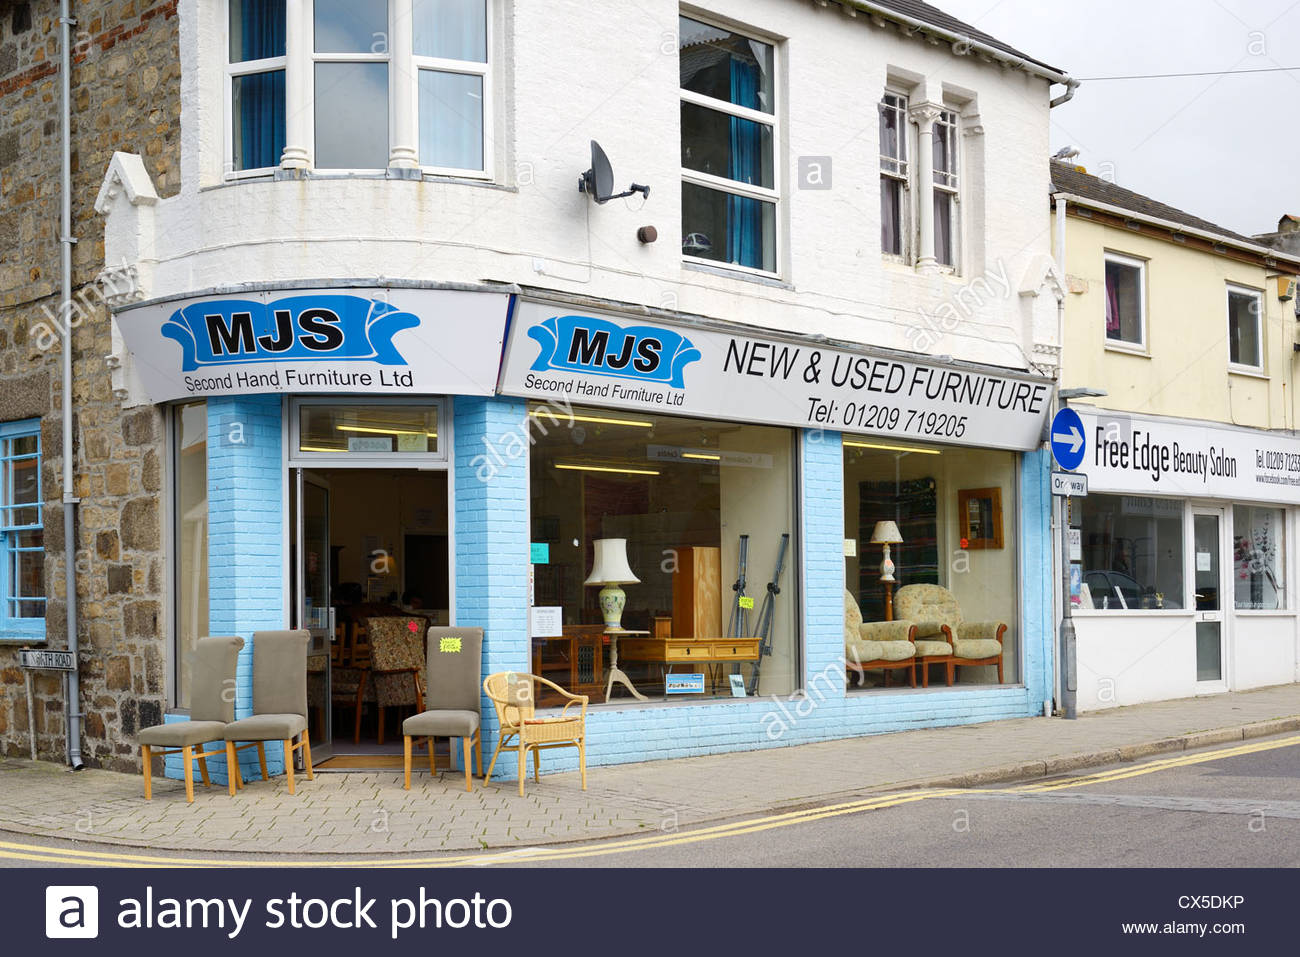 Picture of: Mjs Furniture 2nd Hand Shop Trelowarren Street Camborne Cornwall Stock Photo Alamy